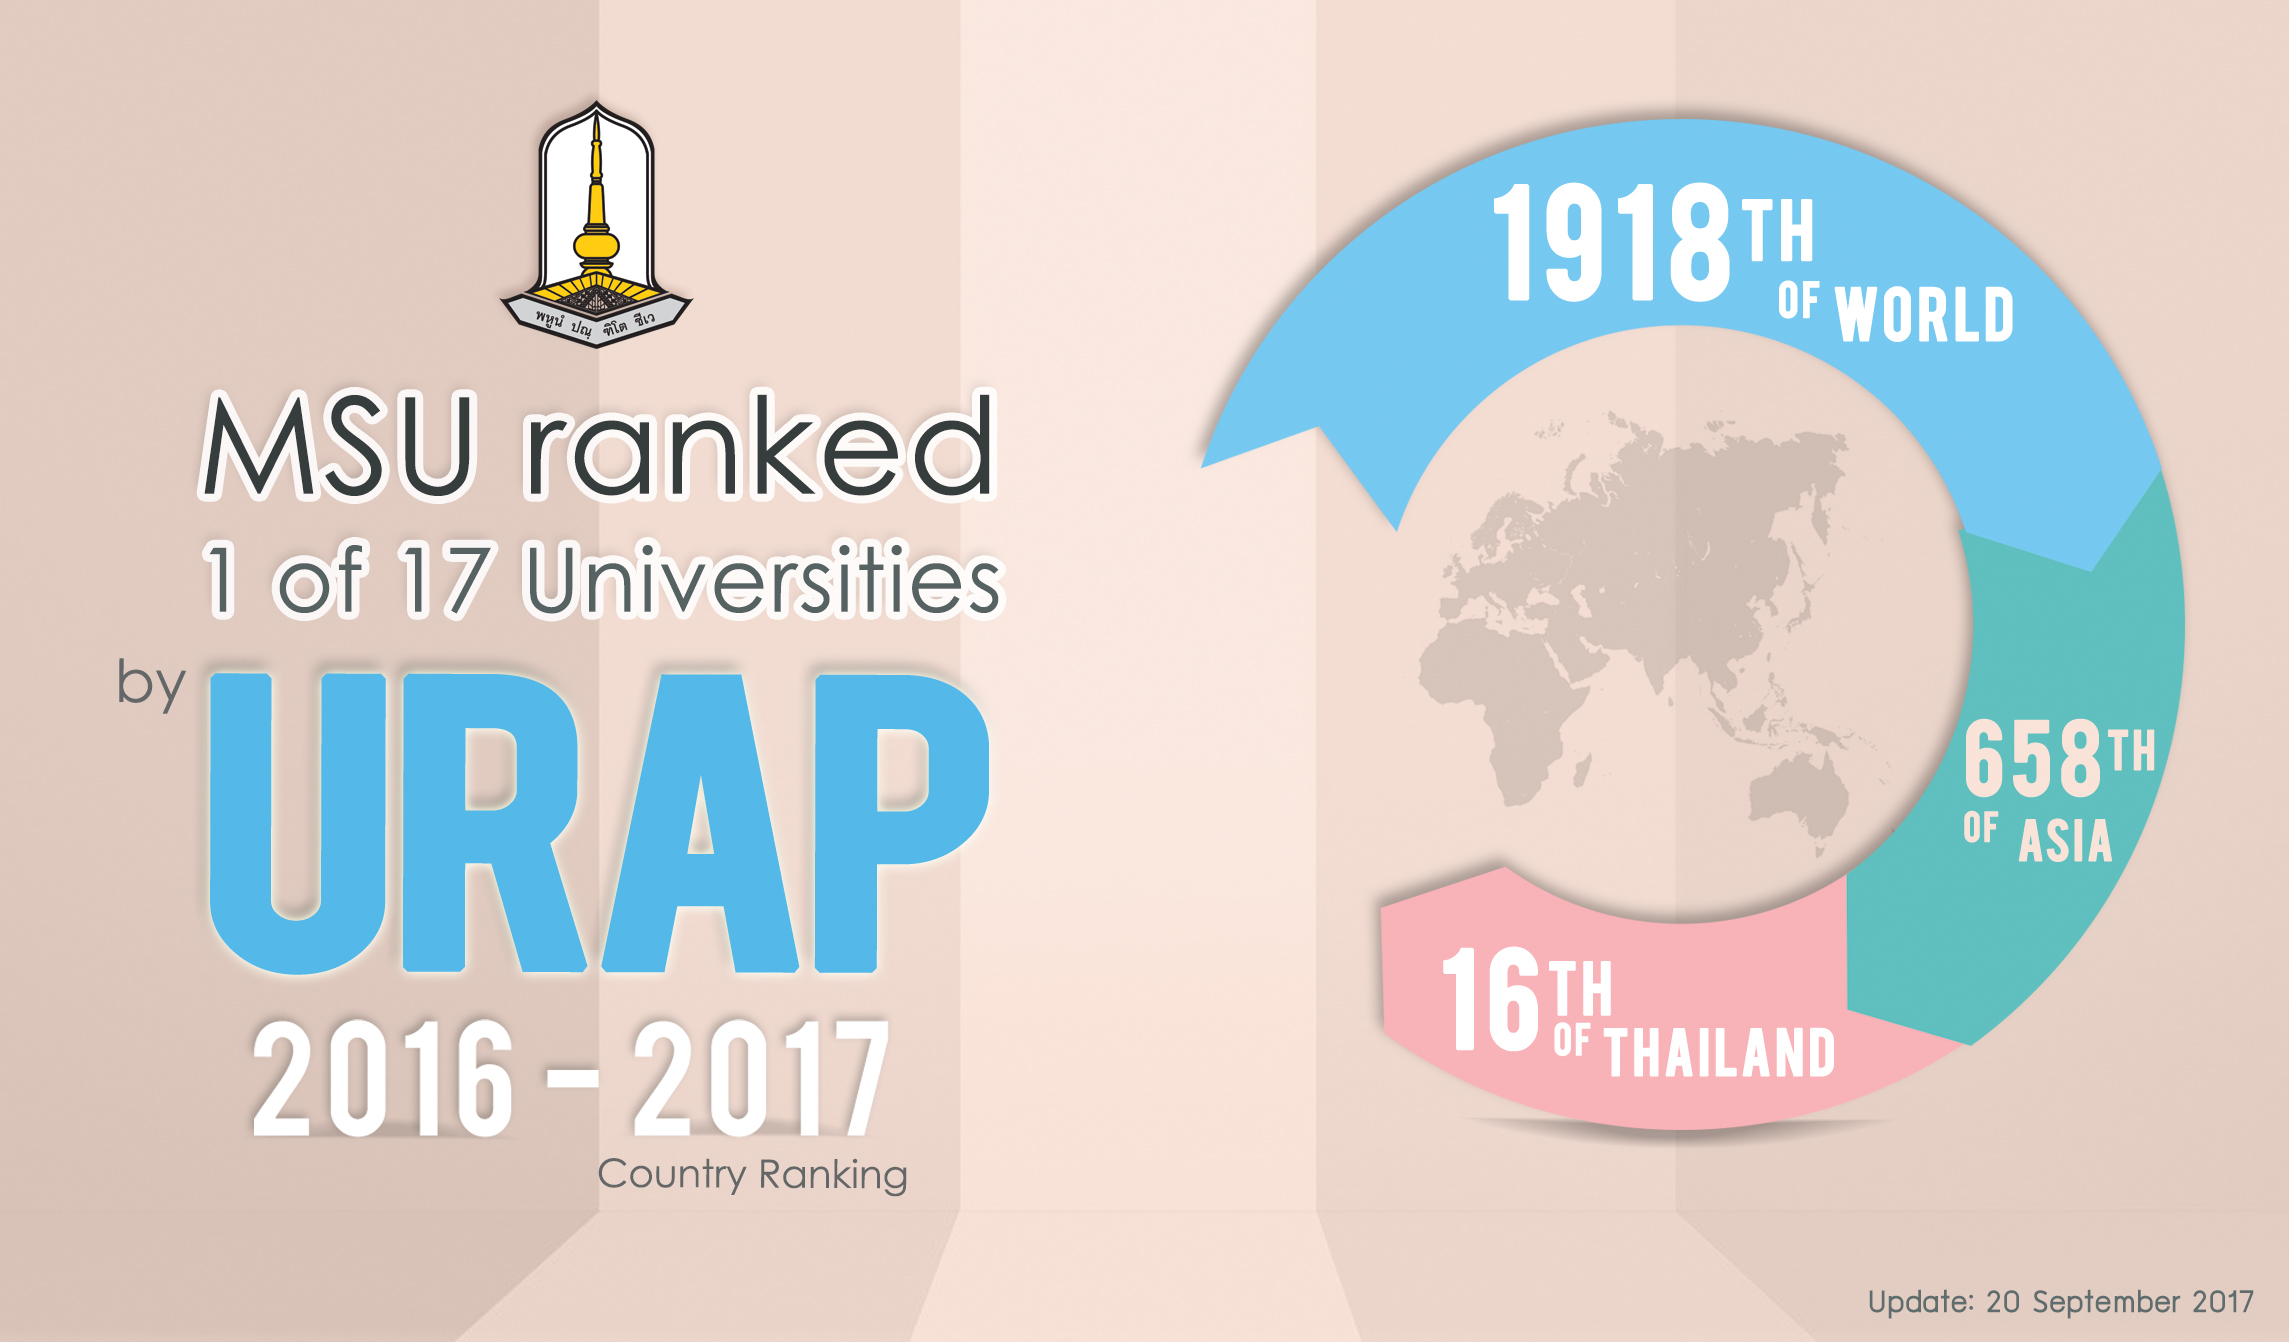 MSU ranked 1 of 17 Universities by URAP 2016-2017 Country Ranking